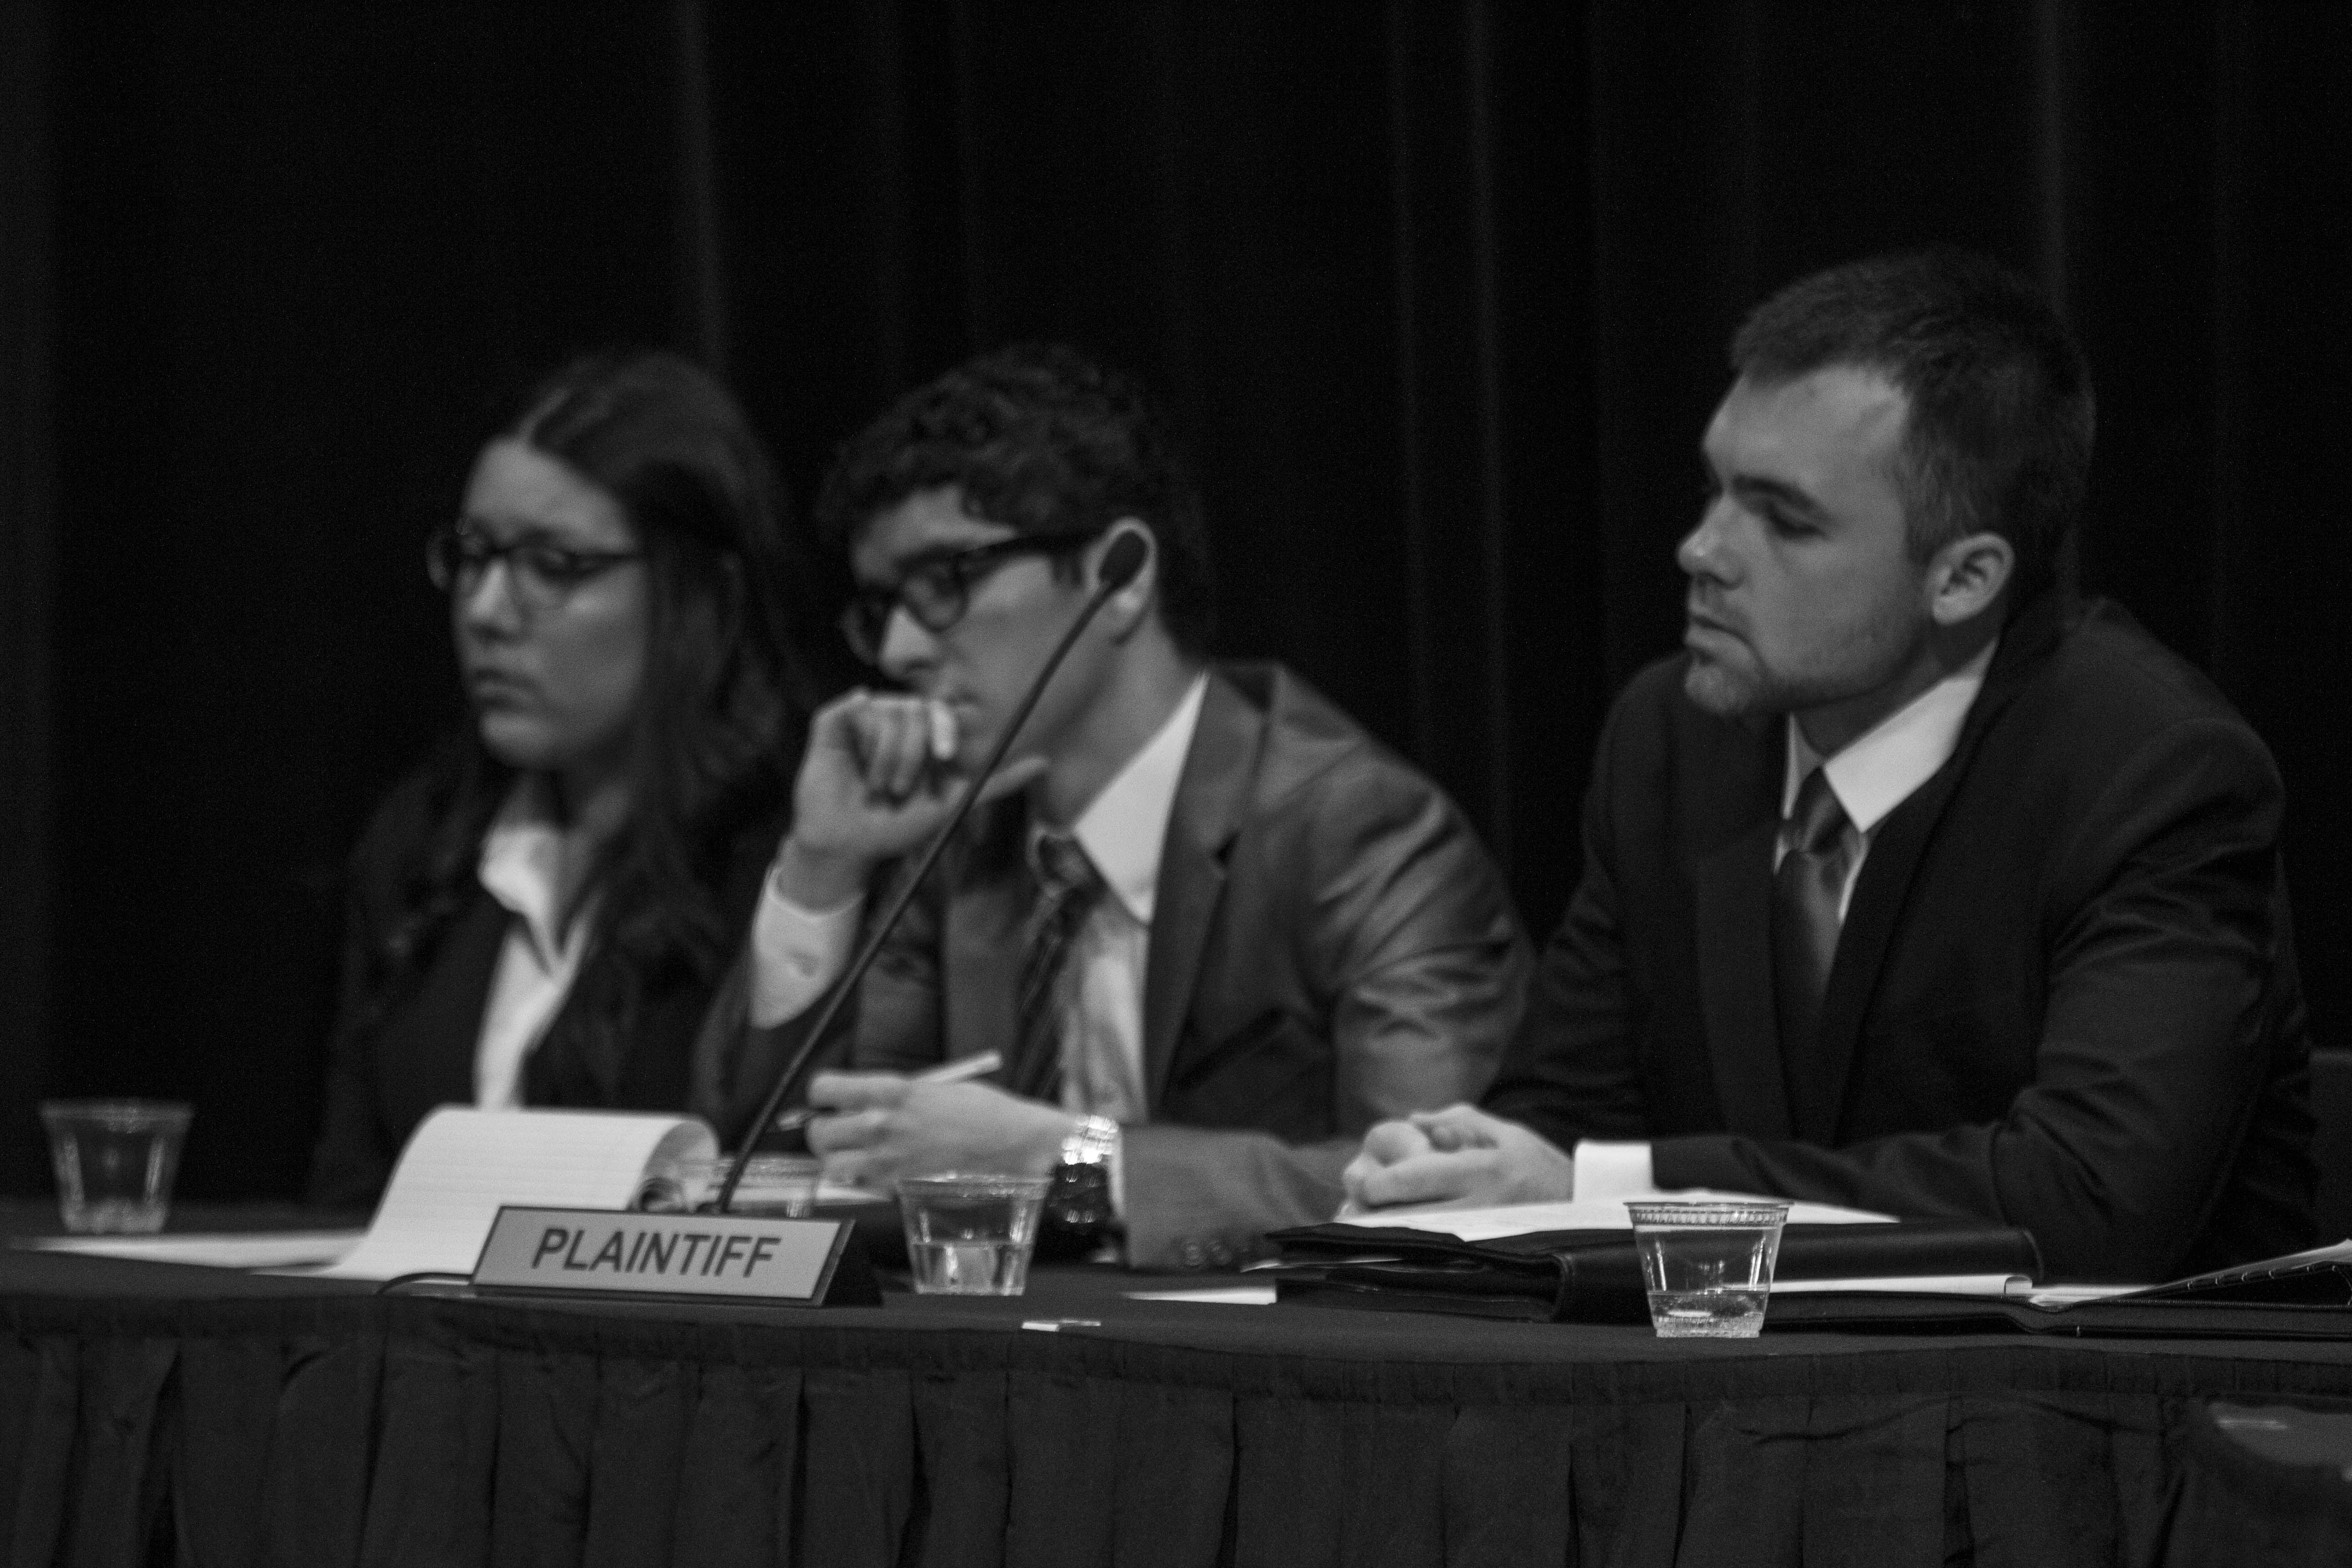 From left, plaintiff attorneys Delia Rivera, Mj Flores, and Connor Amundson listen intently to the defense's arguments in a recent Mock Trial presentation at Chemeketa.